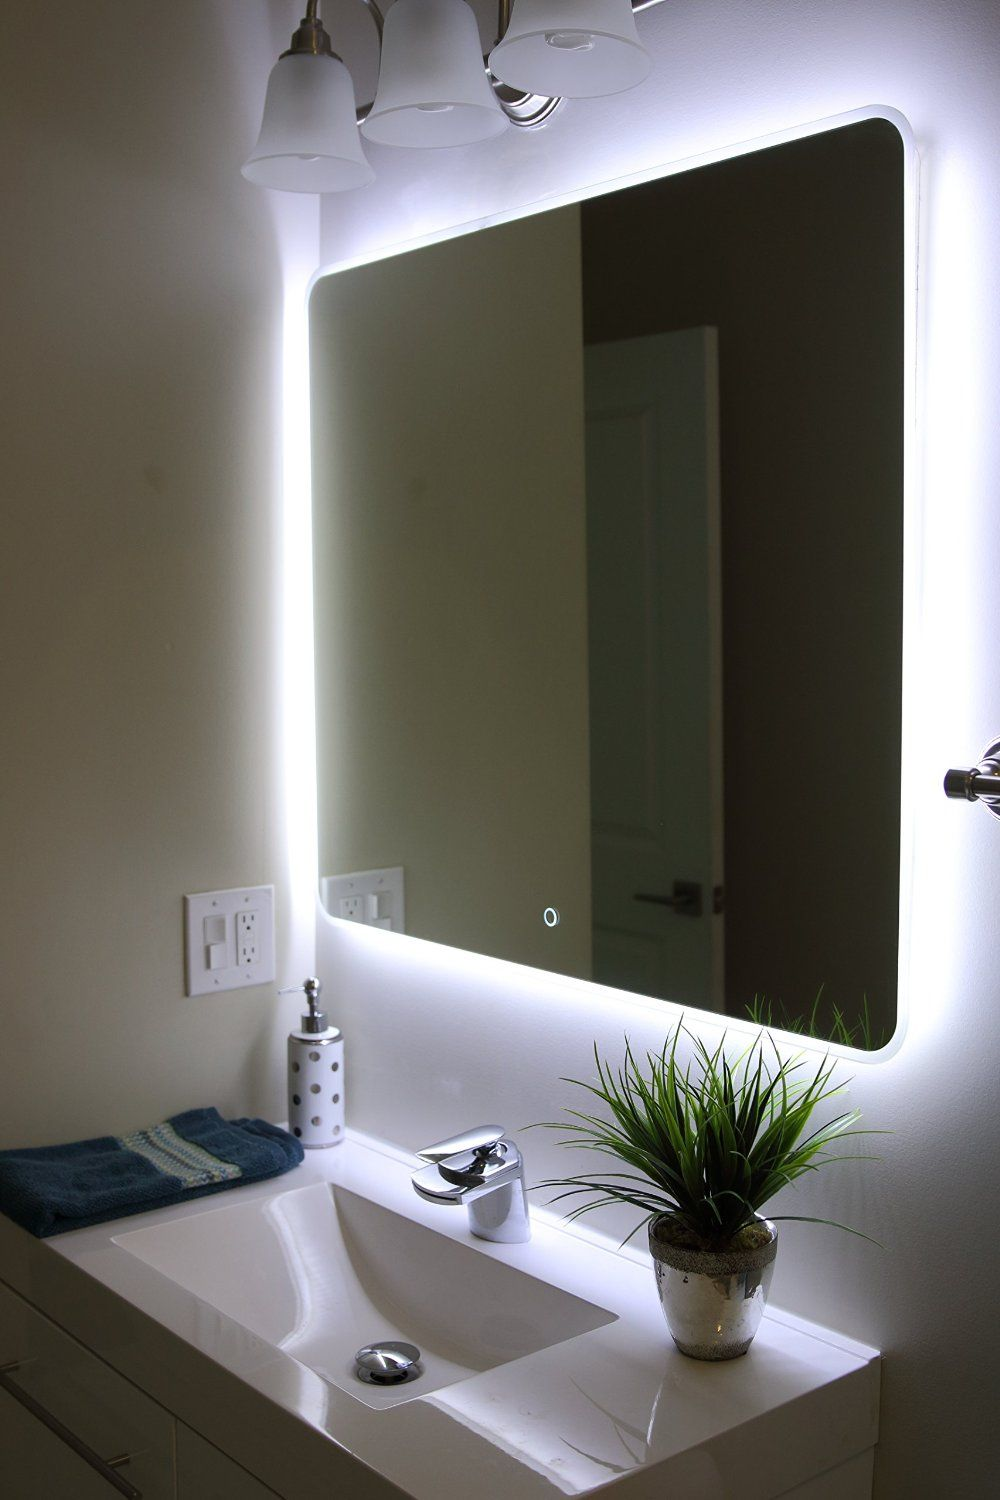 Bathroom Vanity .Co.Za windbay backlit led light bathroom vanity sink mirror. illuminated